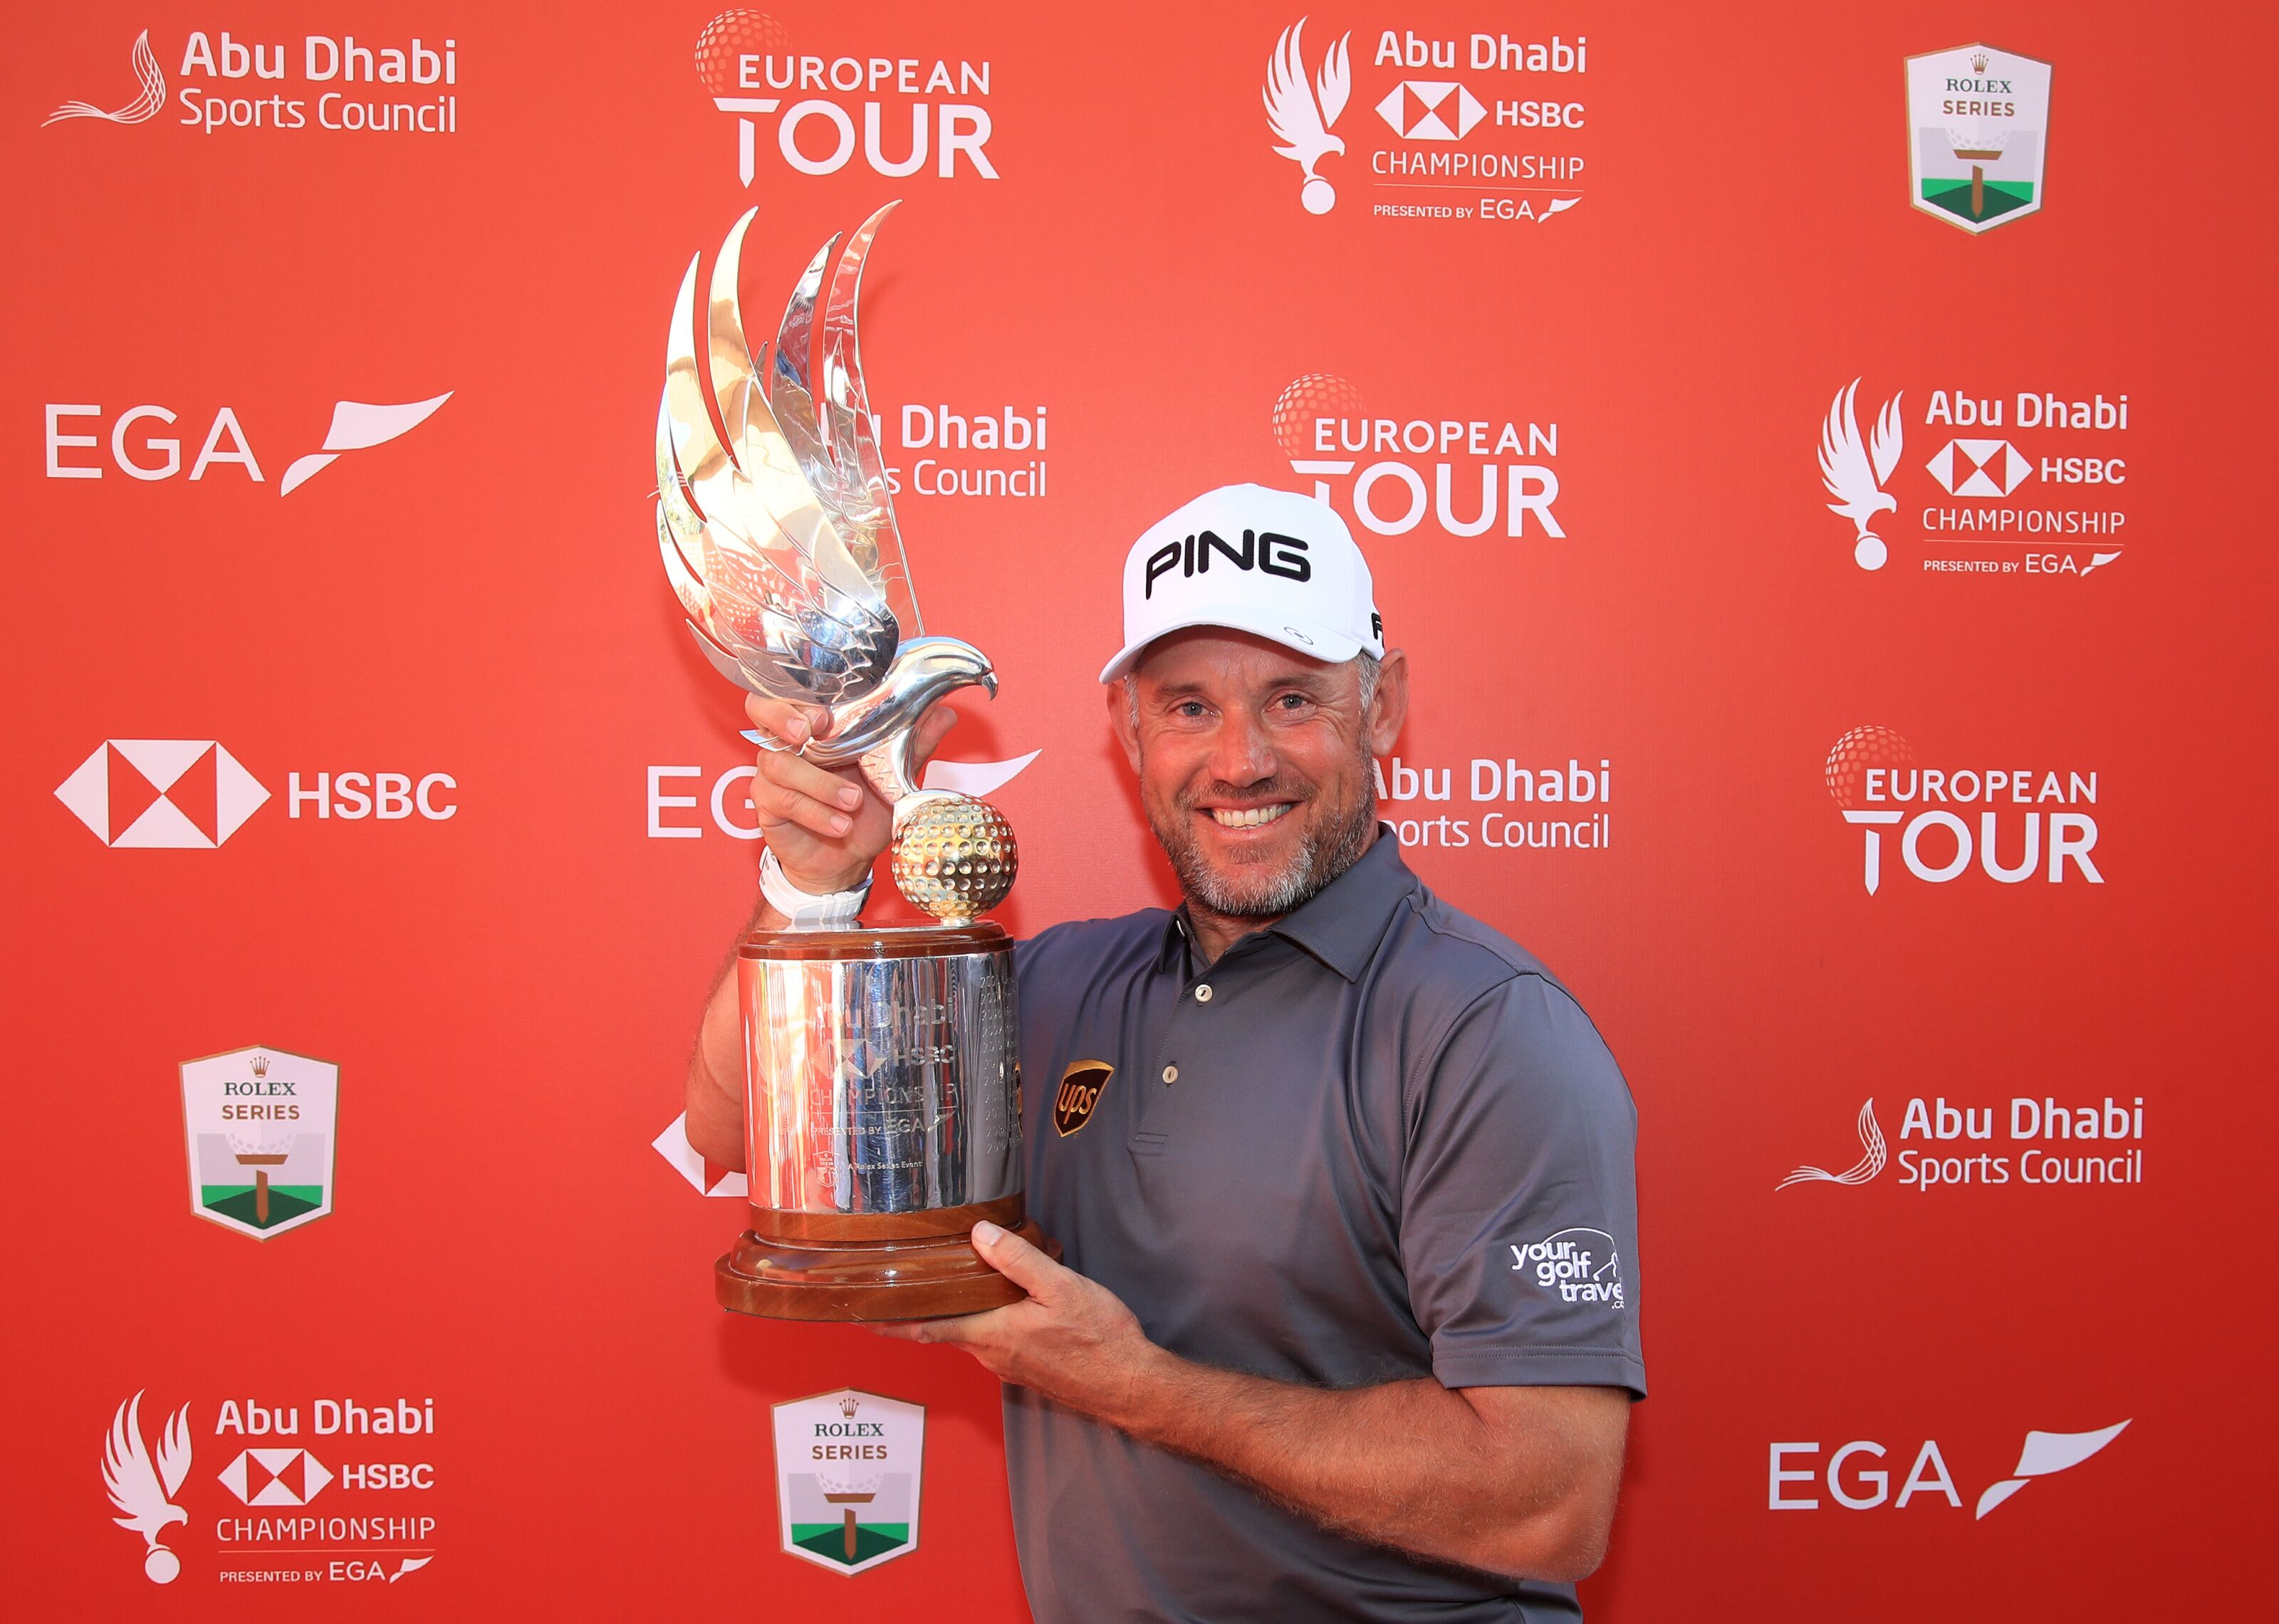 Lee Westwood wins Abu Dhabi HSBC Championship, claims titles in four decades